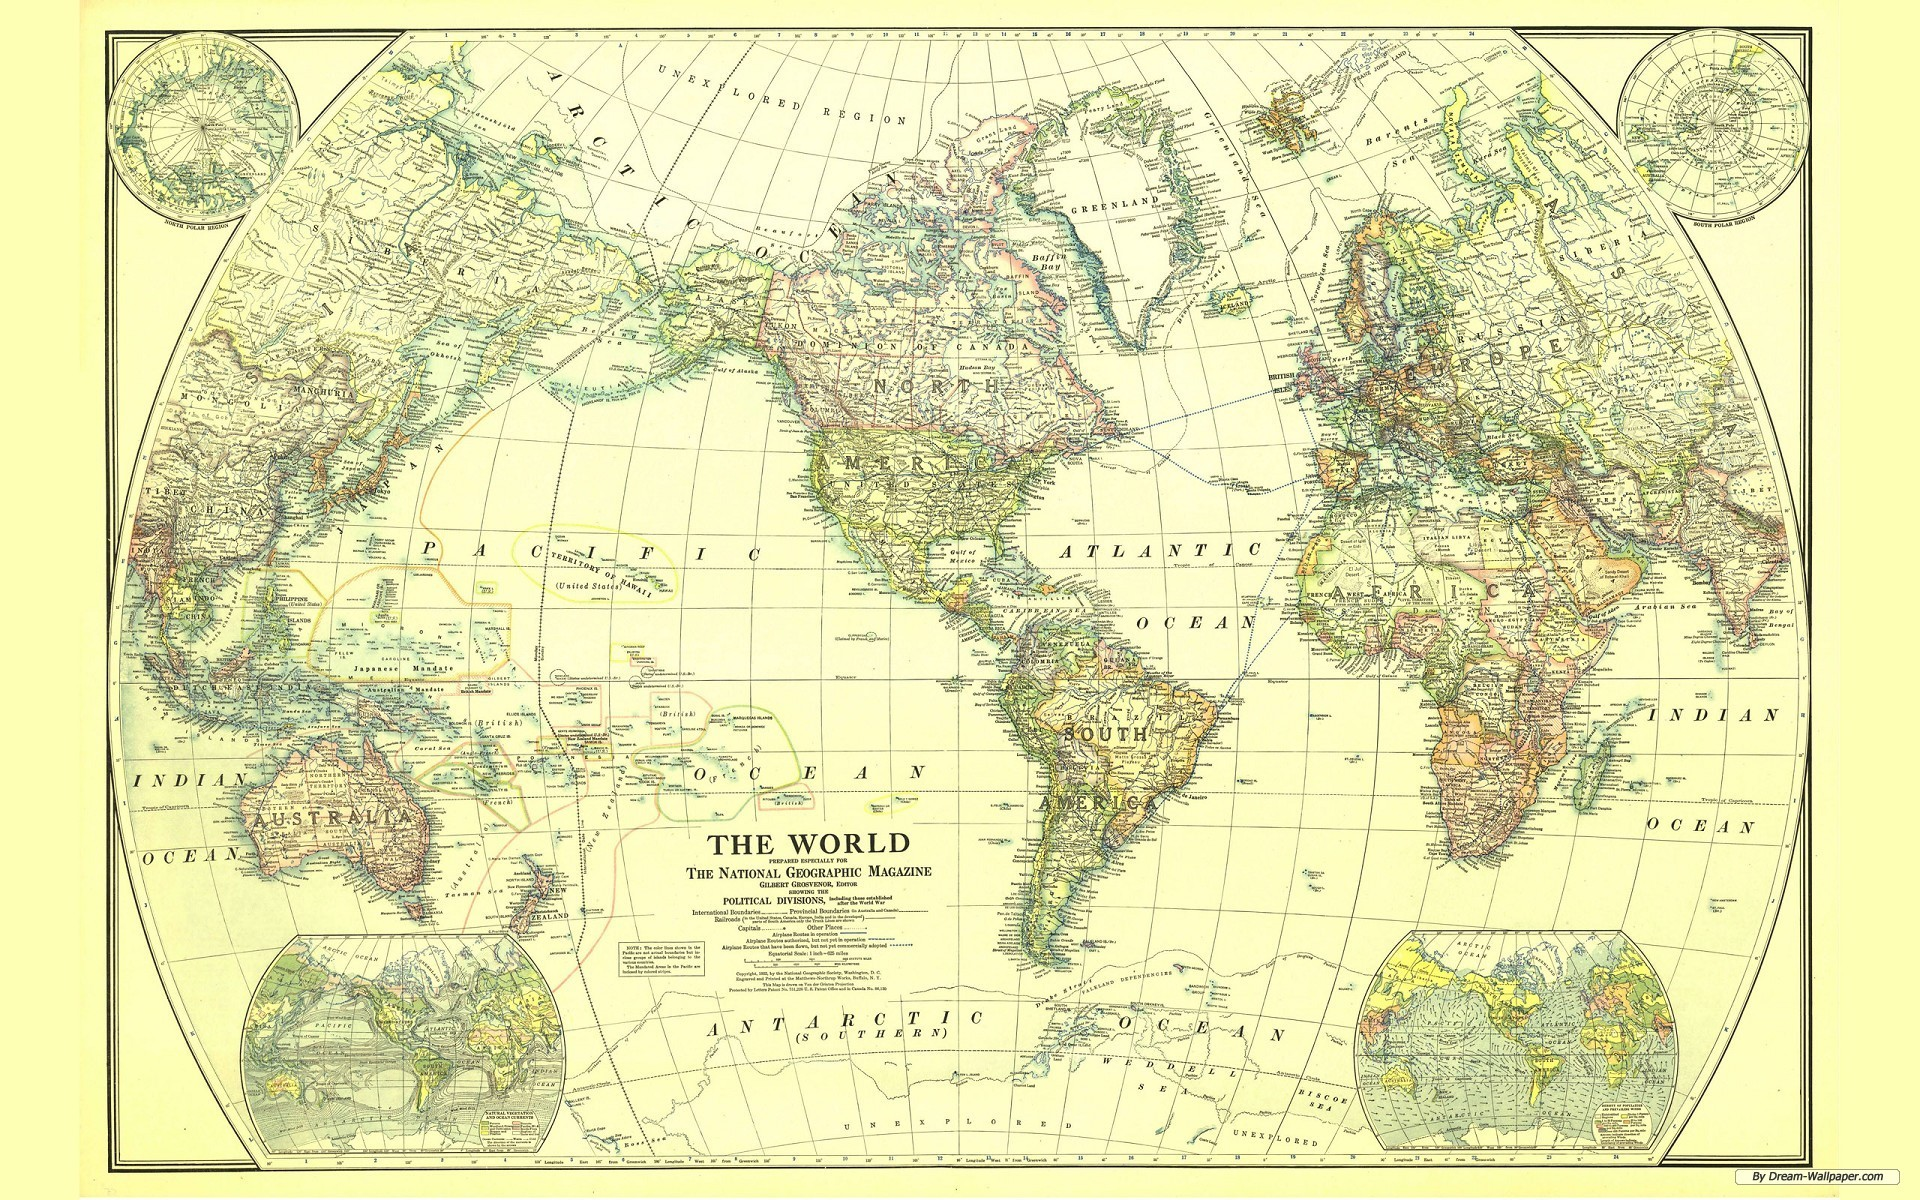 1920x1200 Free Travel wallpaper - World Map wallpaper -  wallpaper - Index 5